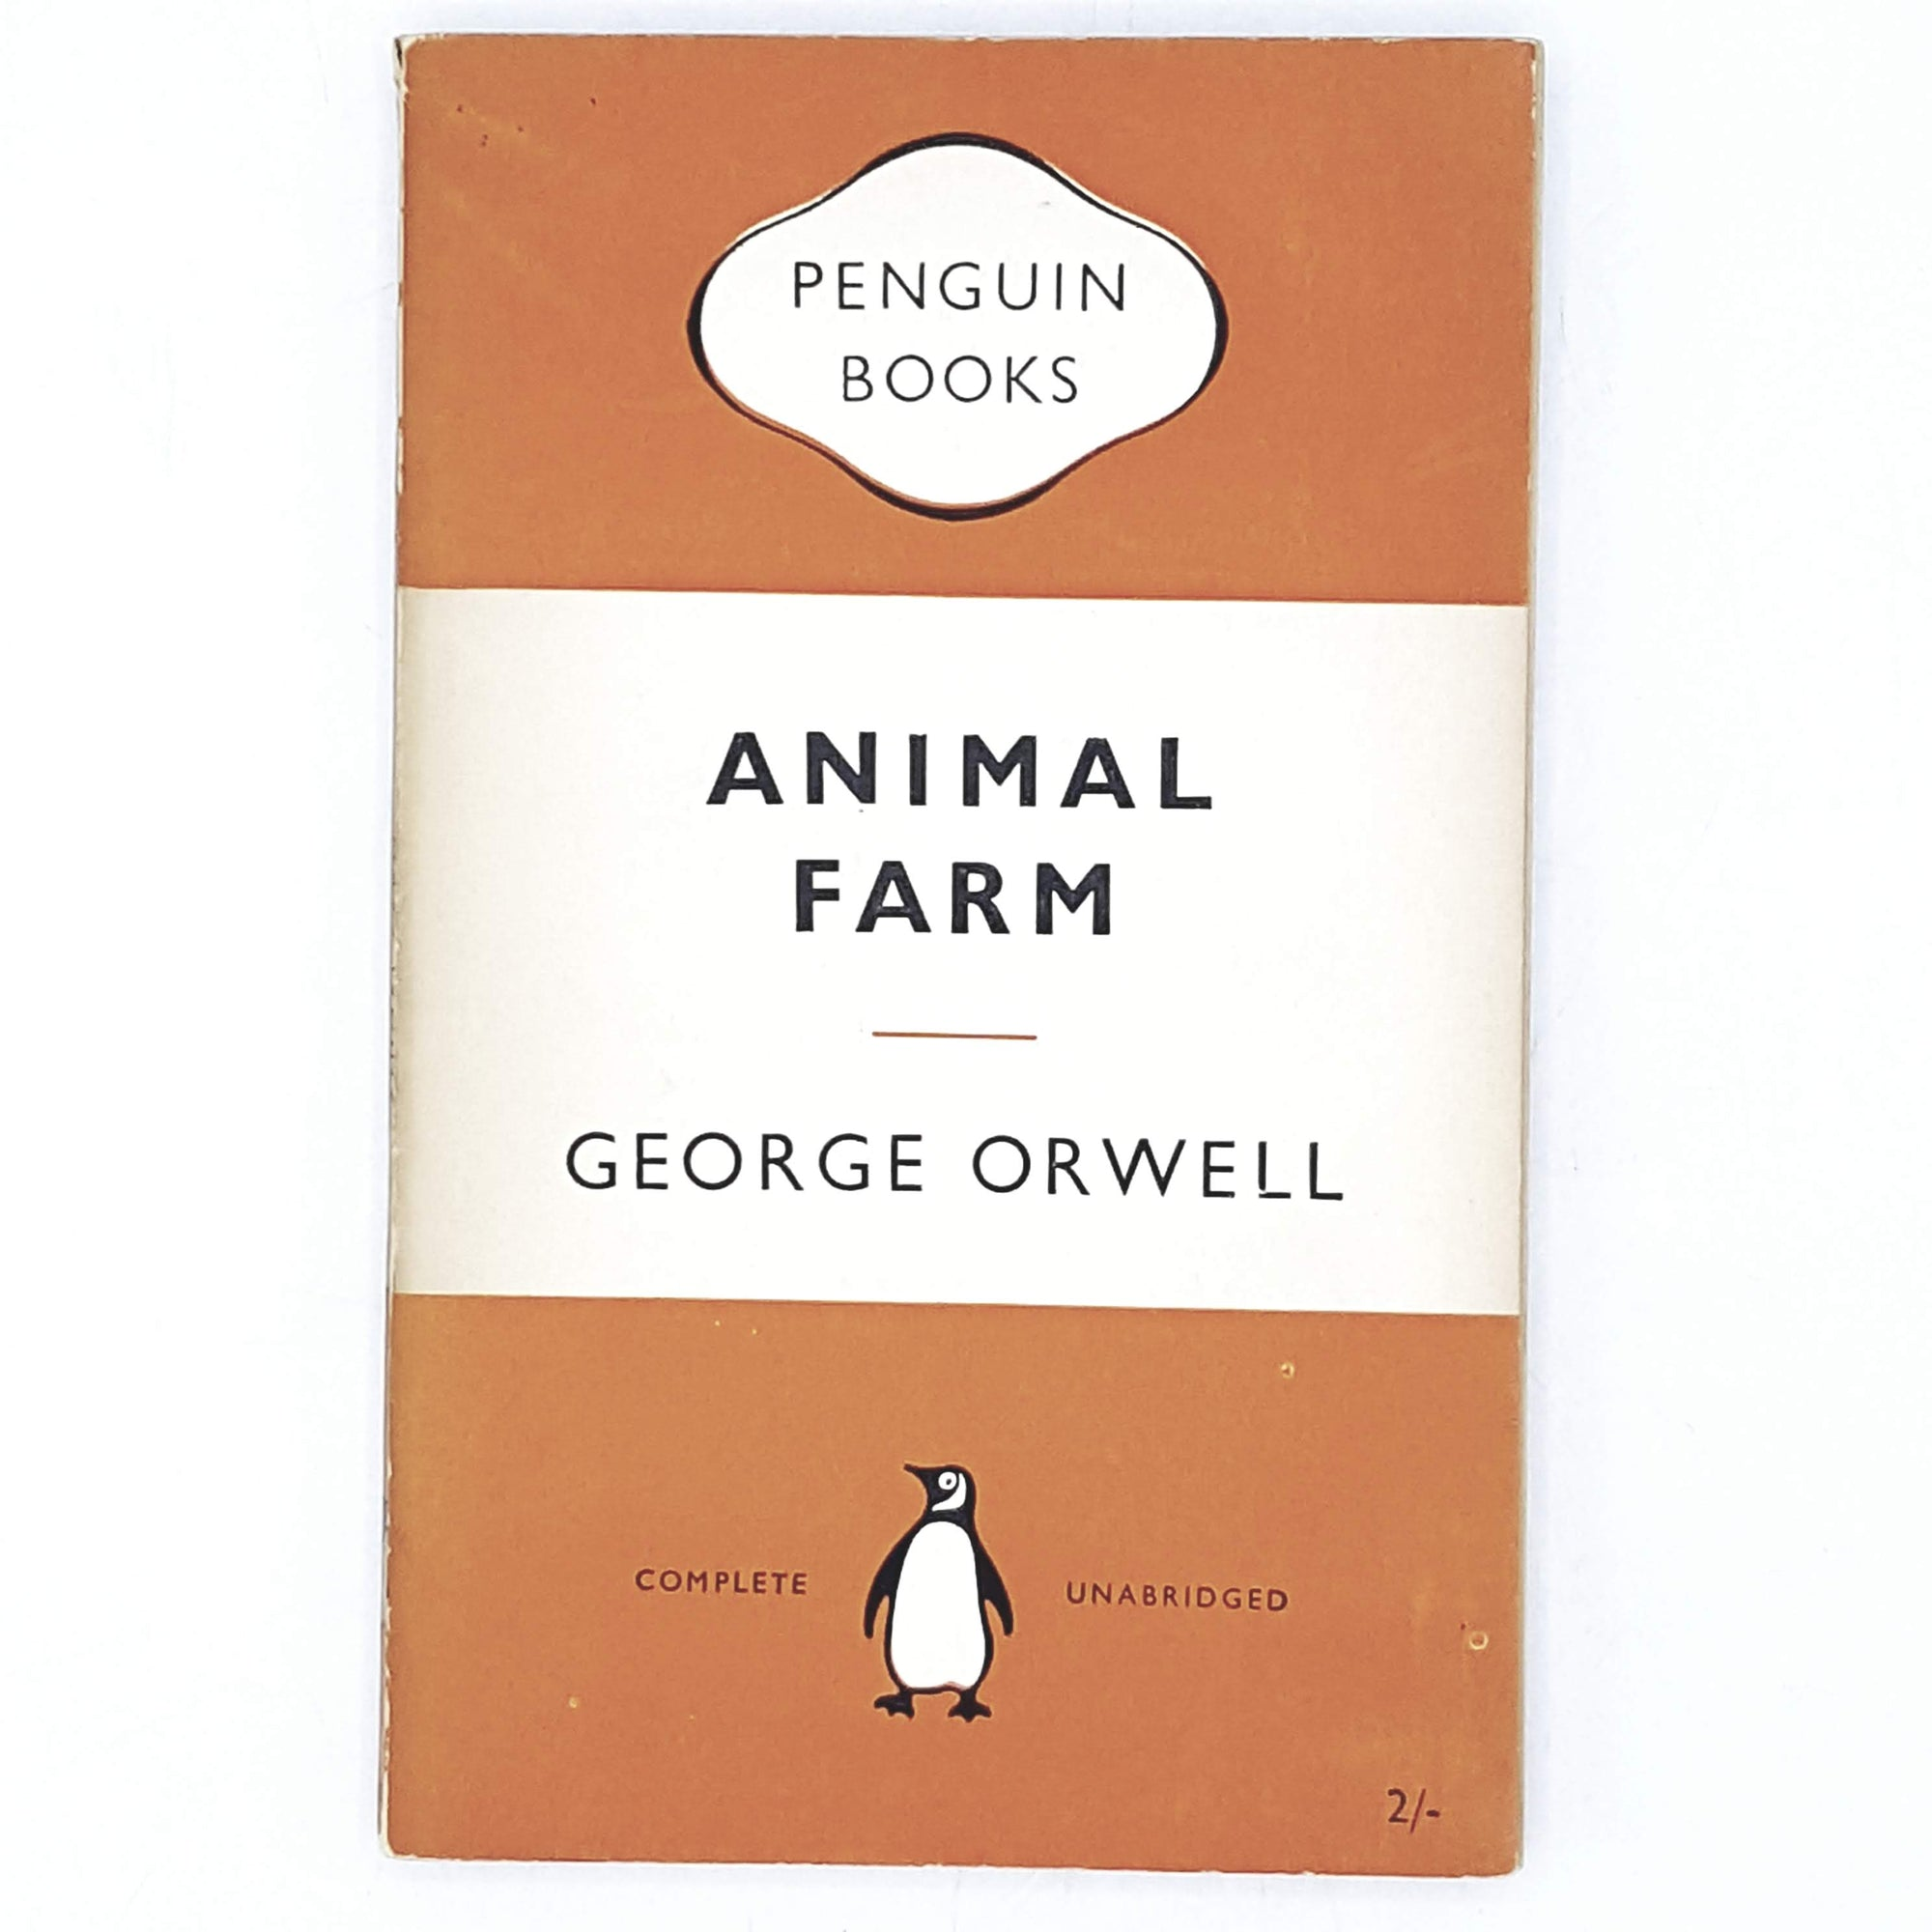 George Orwell's Animal Farm 1954 - 1955